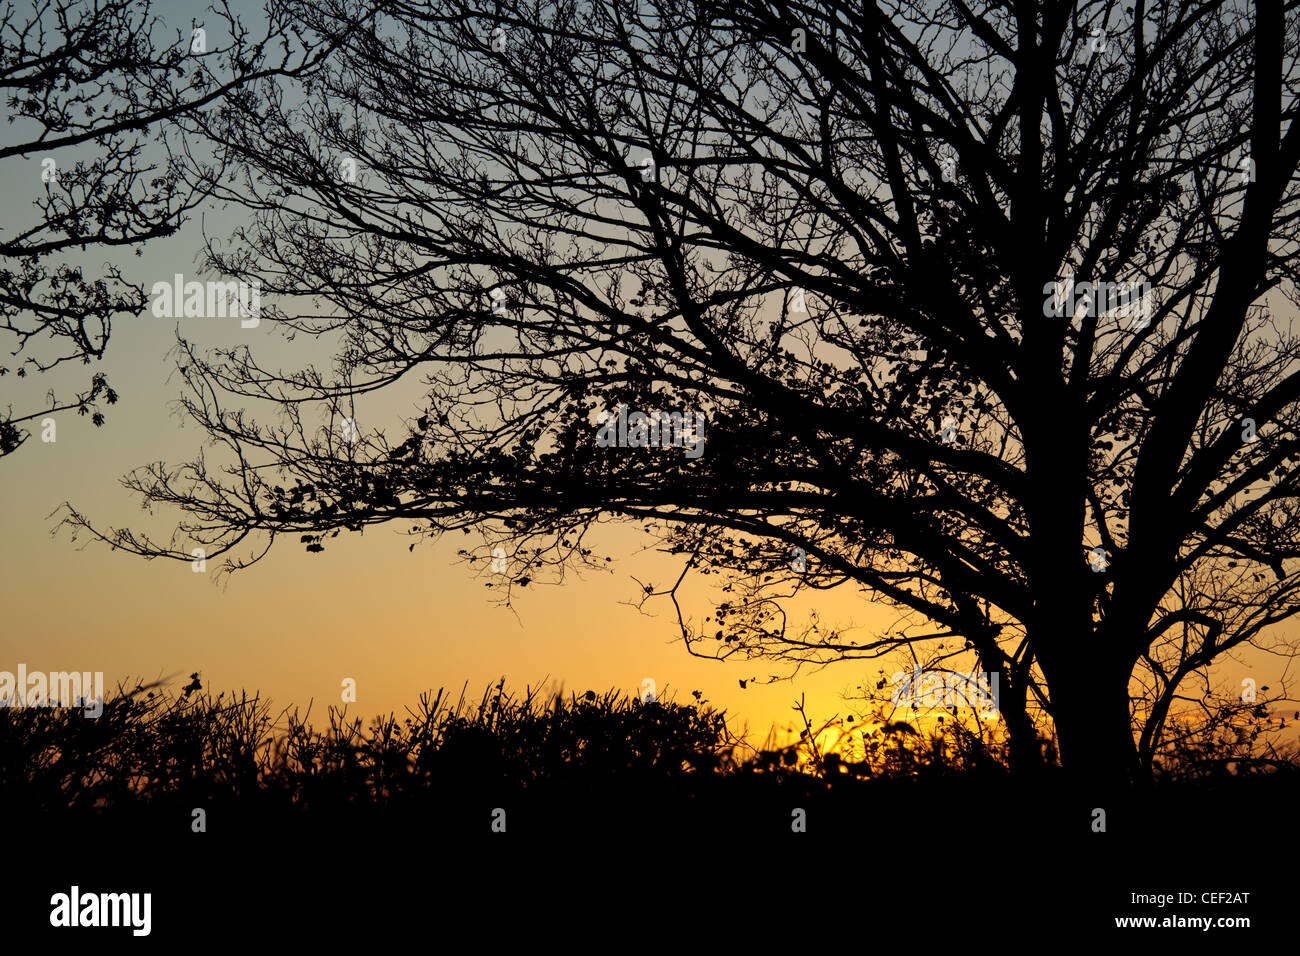 Silhouette of a tree at sunset in the Chiltern Hills Stock Photo